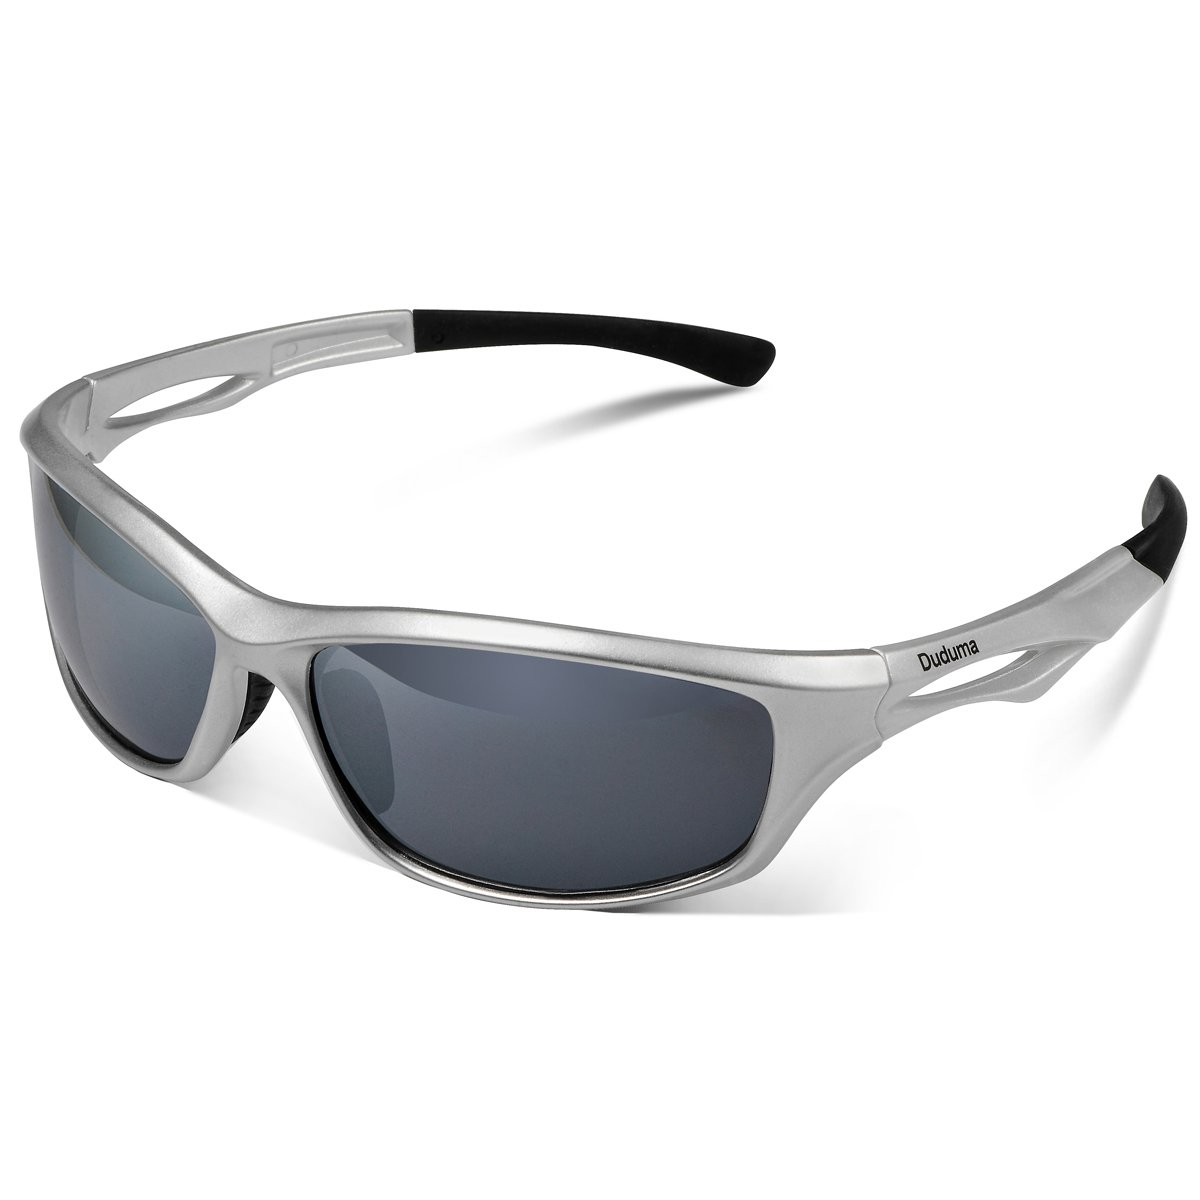 0e569ed8bd Duduma Polarized Sports Sunglasses for Baseball Running Cycling Fishing  Golf Tr90 Unbreakable Frame (silver black)  Amazon.ca  Sports   Outdoors